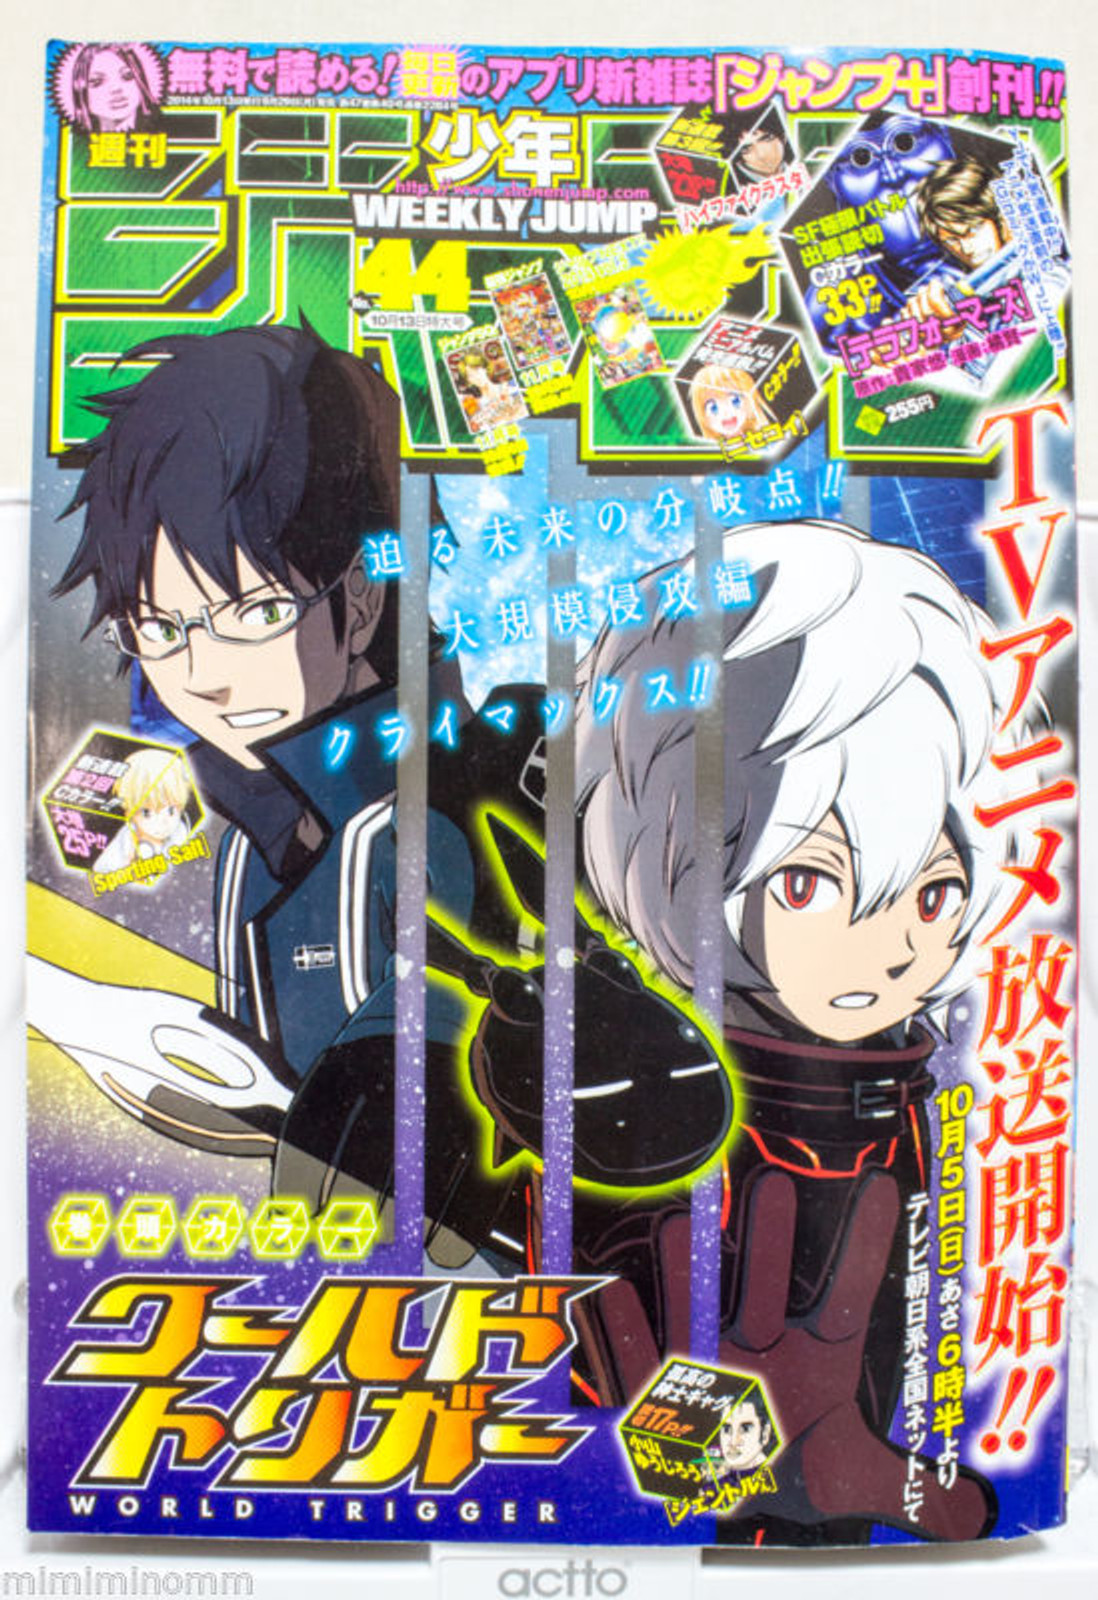 Weekly Shonen JUMP  Vol.44 2014 World Trigger / Japanese Magazine JAPAN MANGA